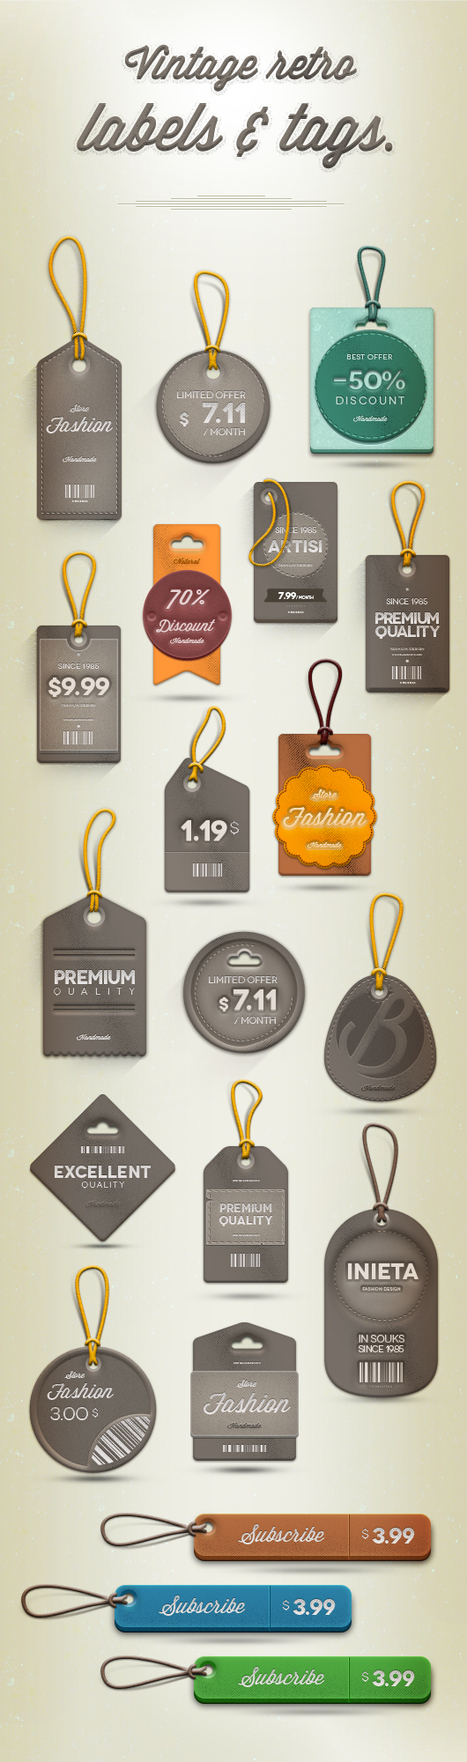 Download Vintage Retro Labels Psd file | The Official Photoshop Roadmap Journal | Scoop.it